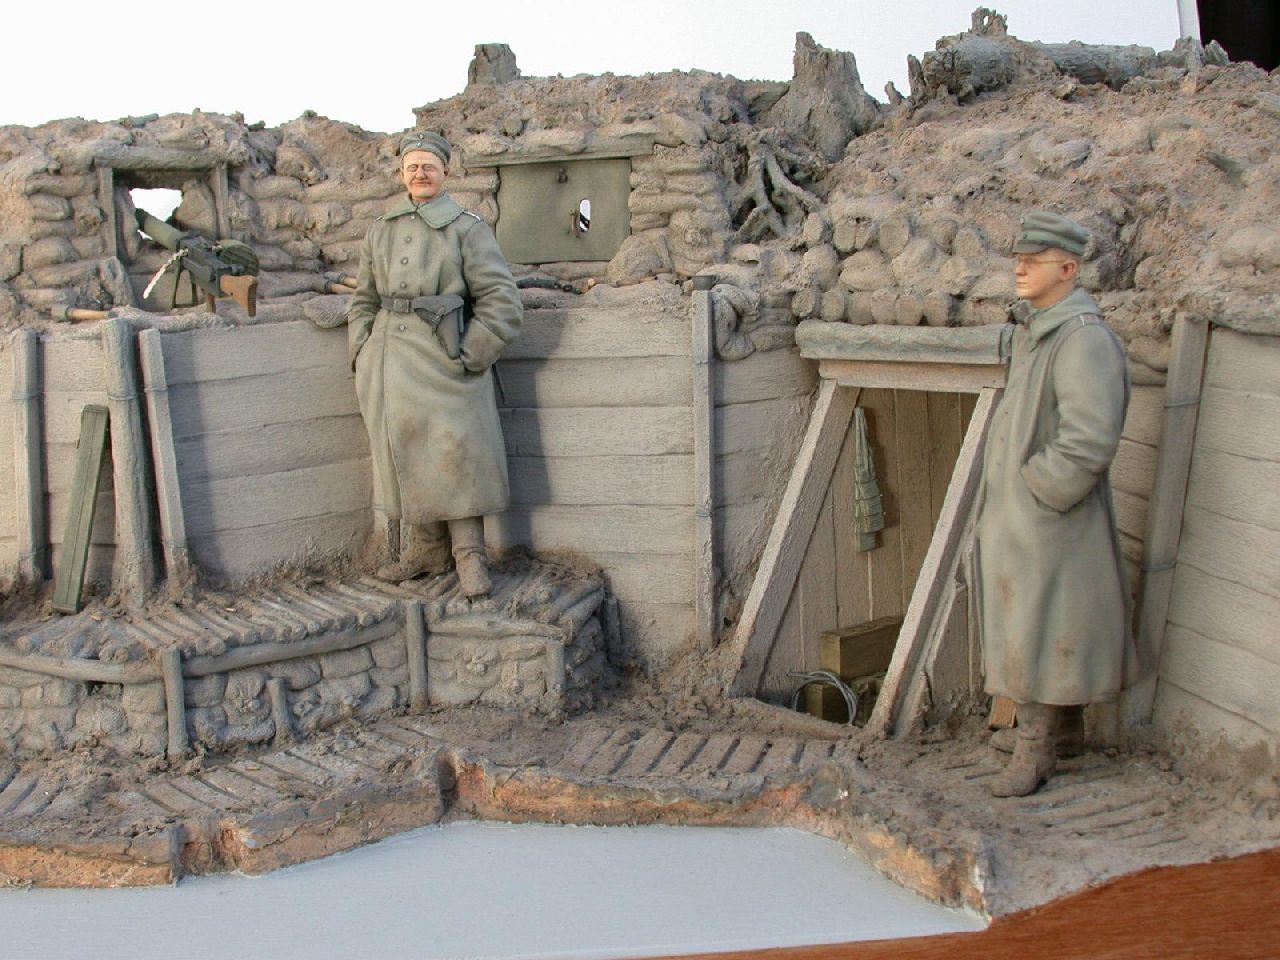 The German Trench